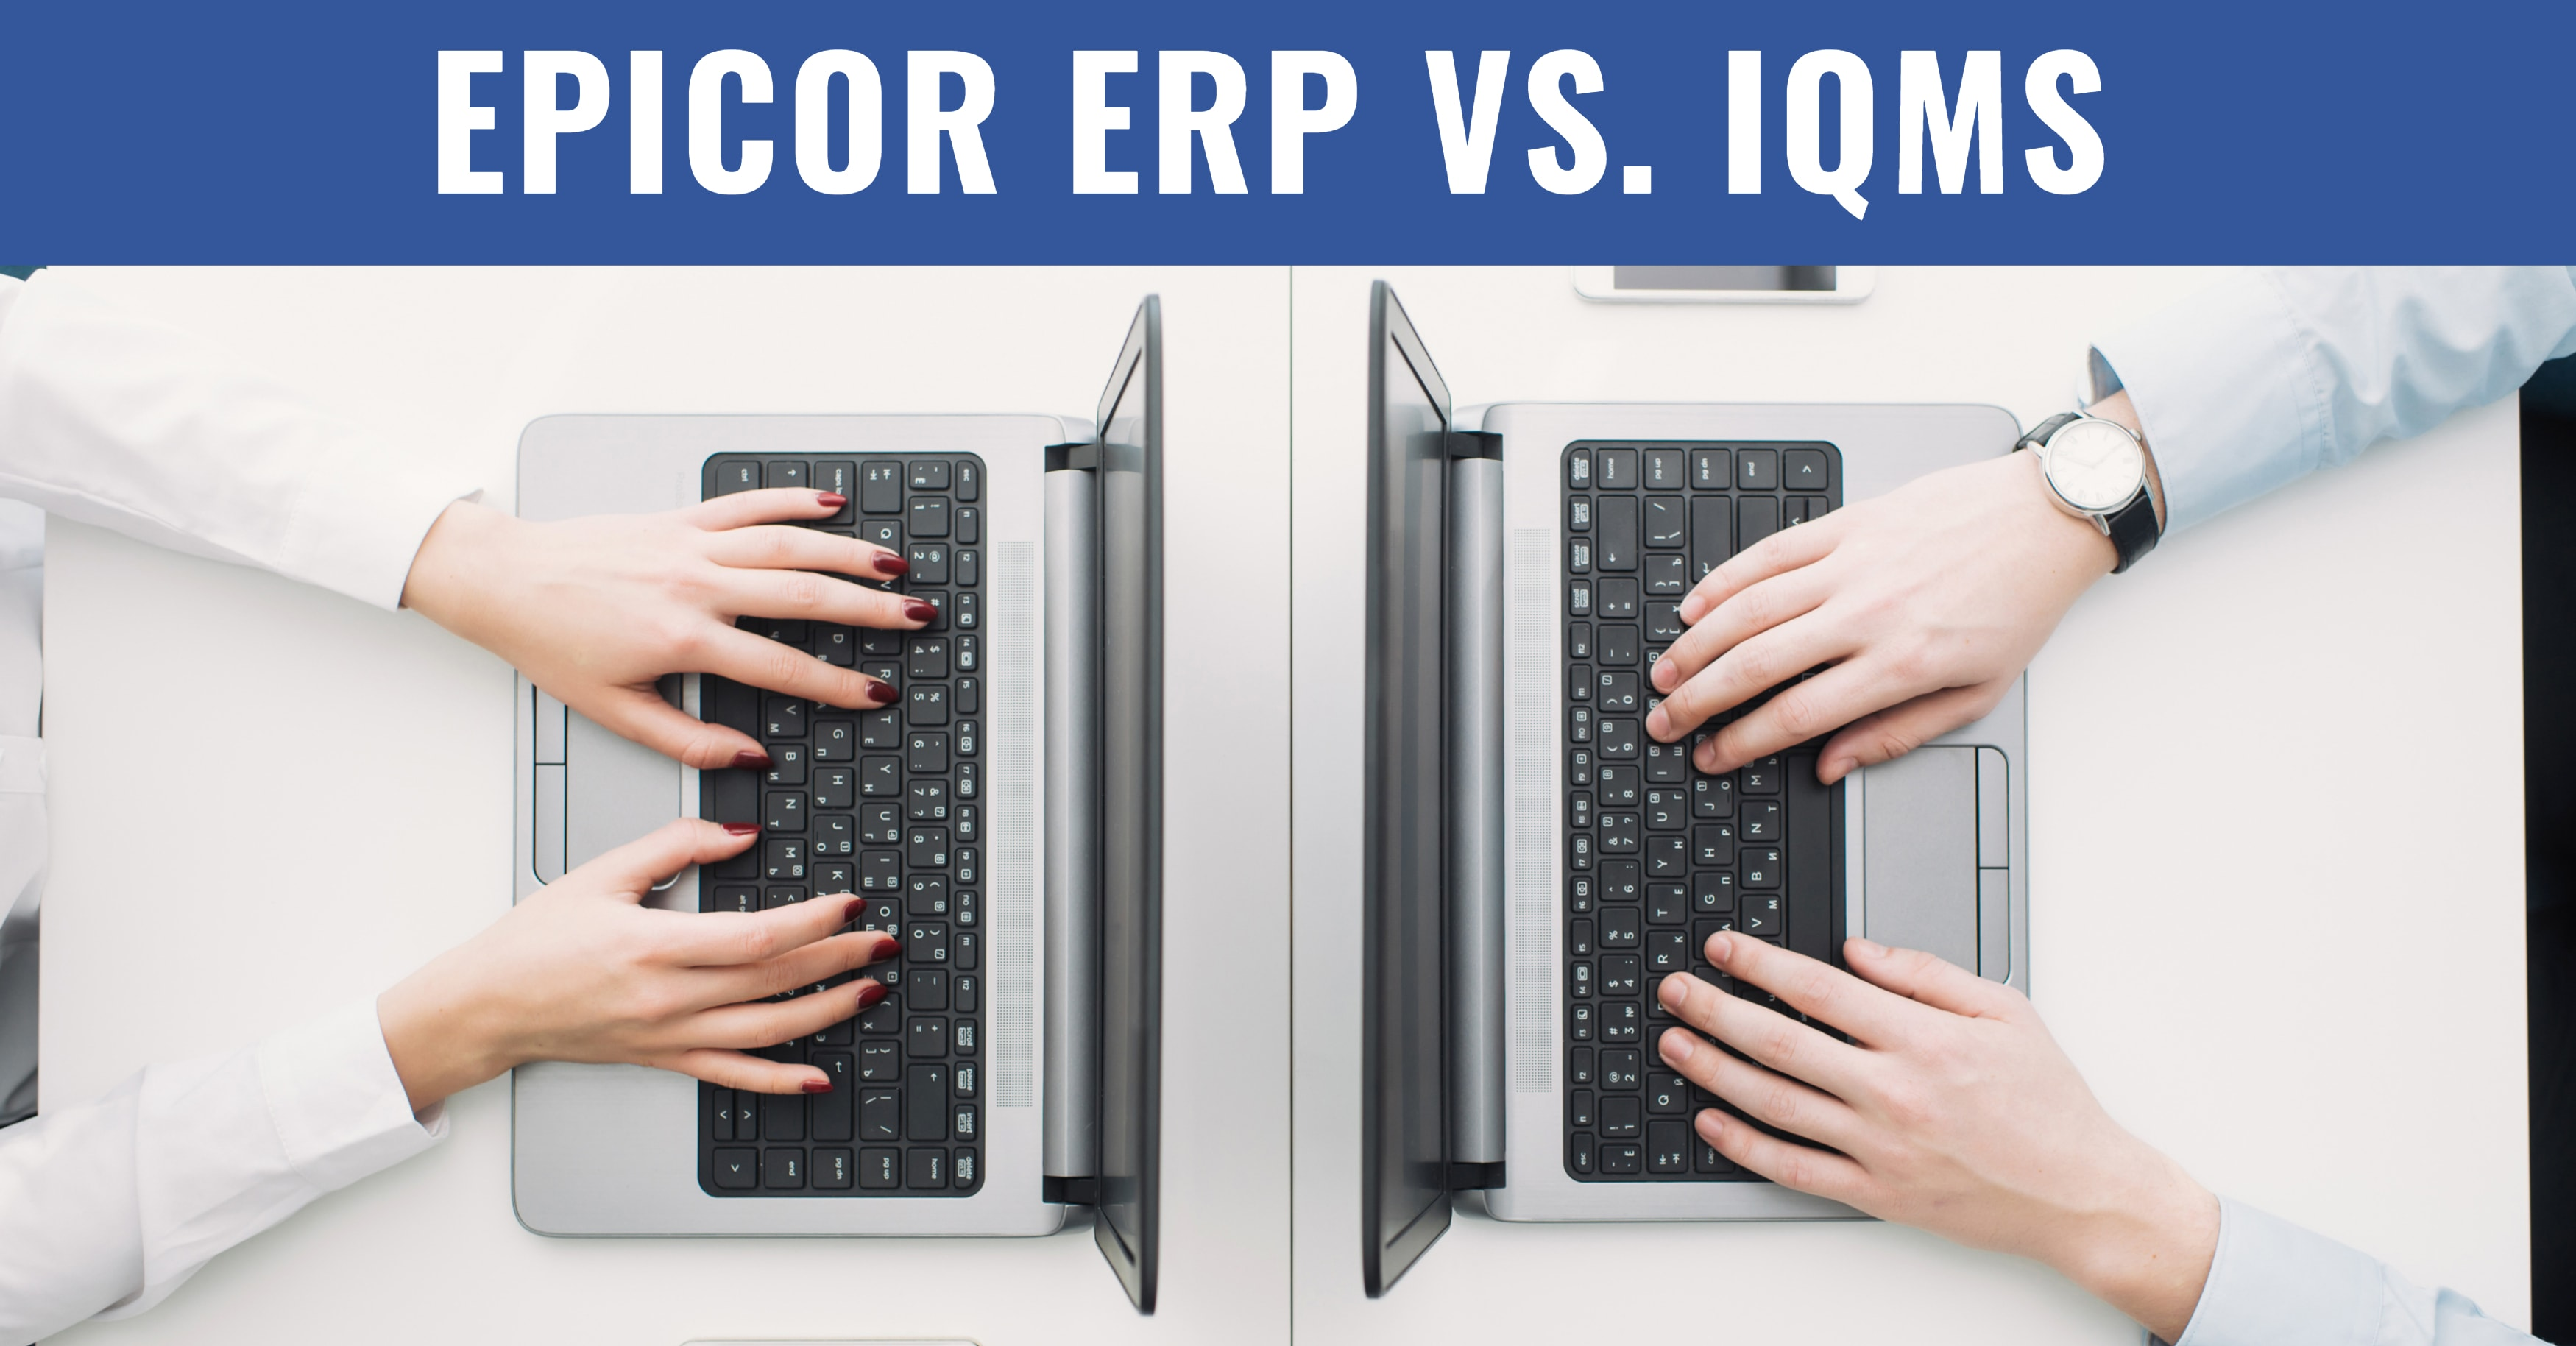 Epicor ERP vs. IQMS